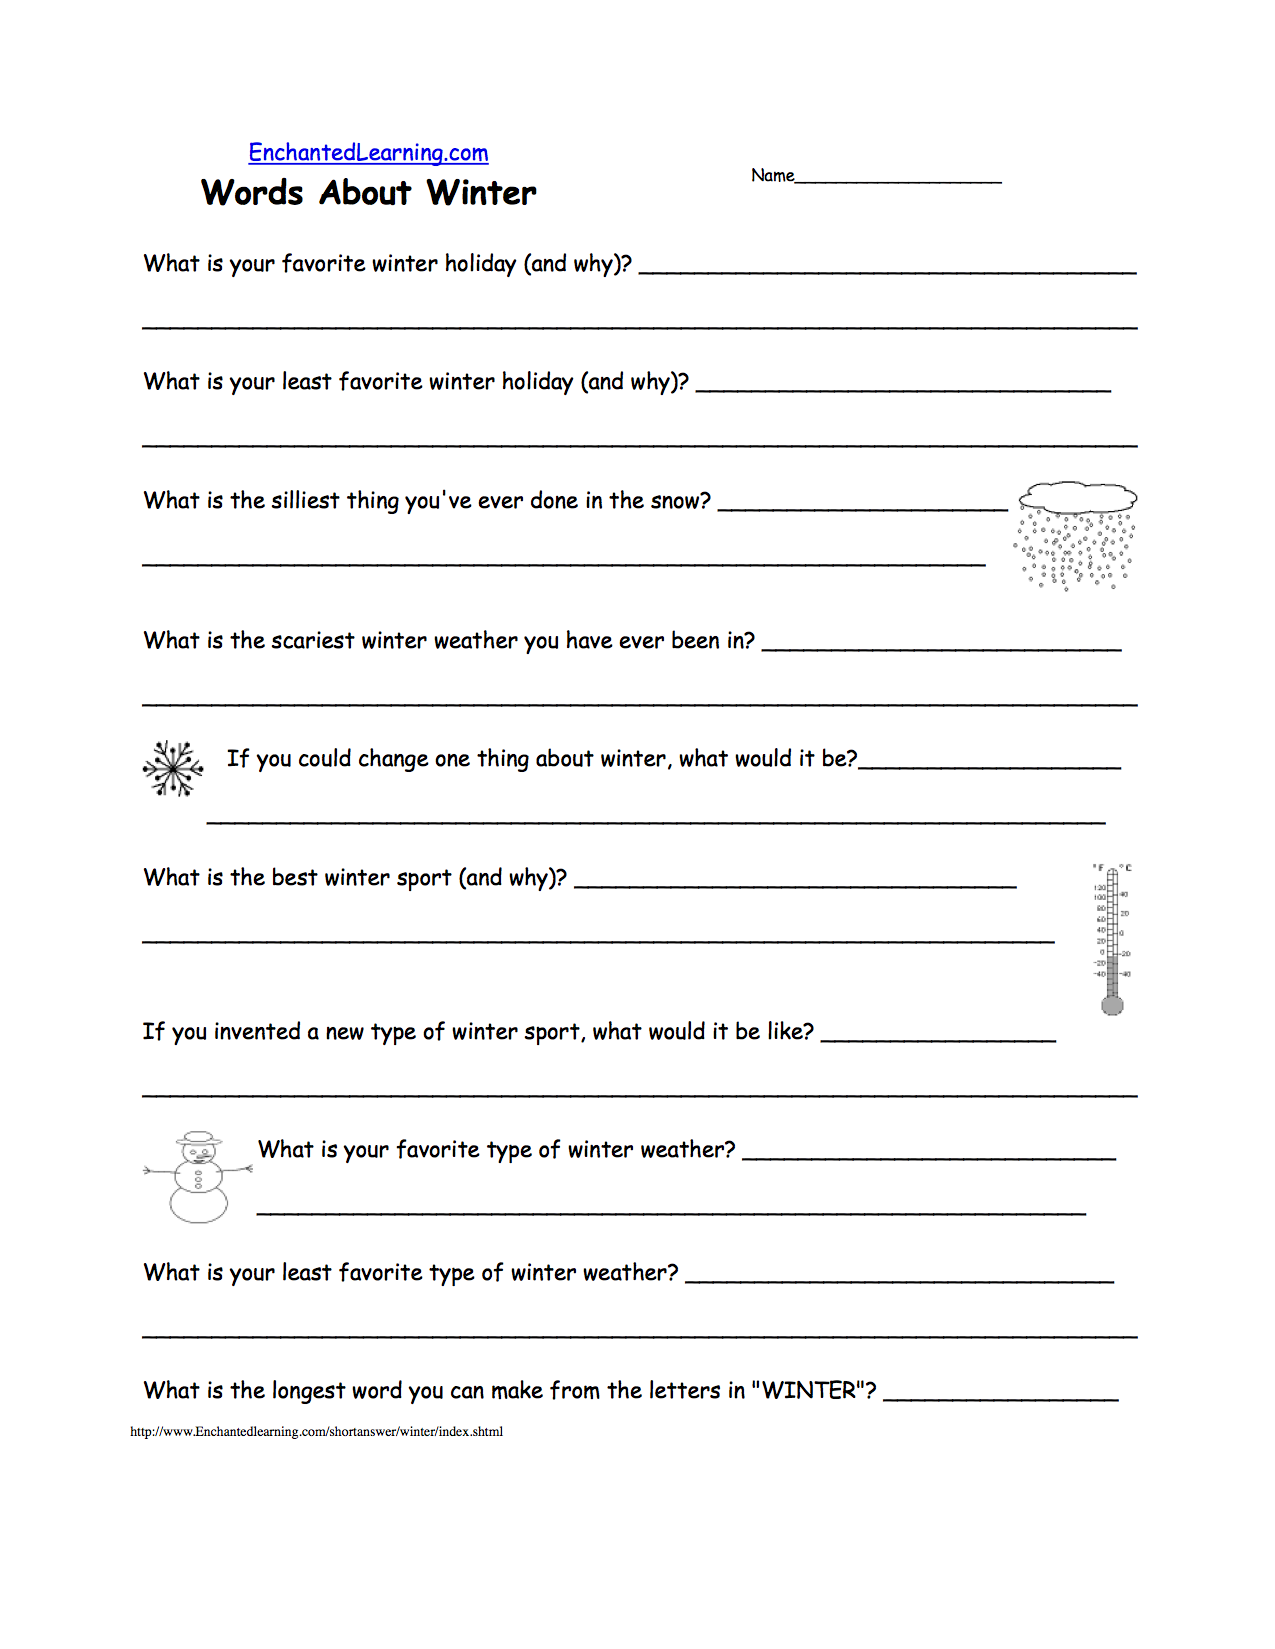 worksheet Winter Worksheets writing worksheets winter k 3 theme page at enchantedlearning com weather words about winter